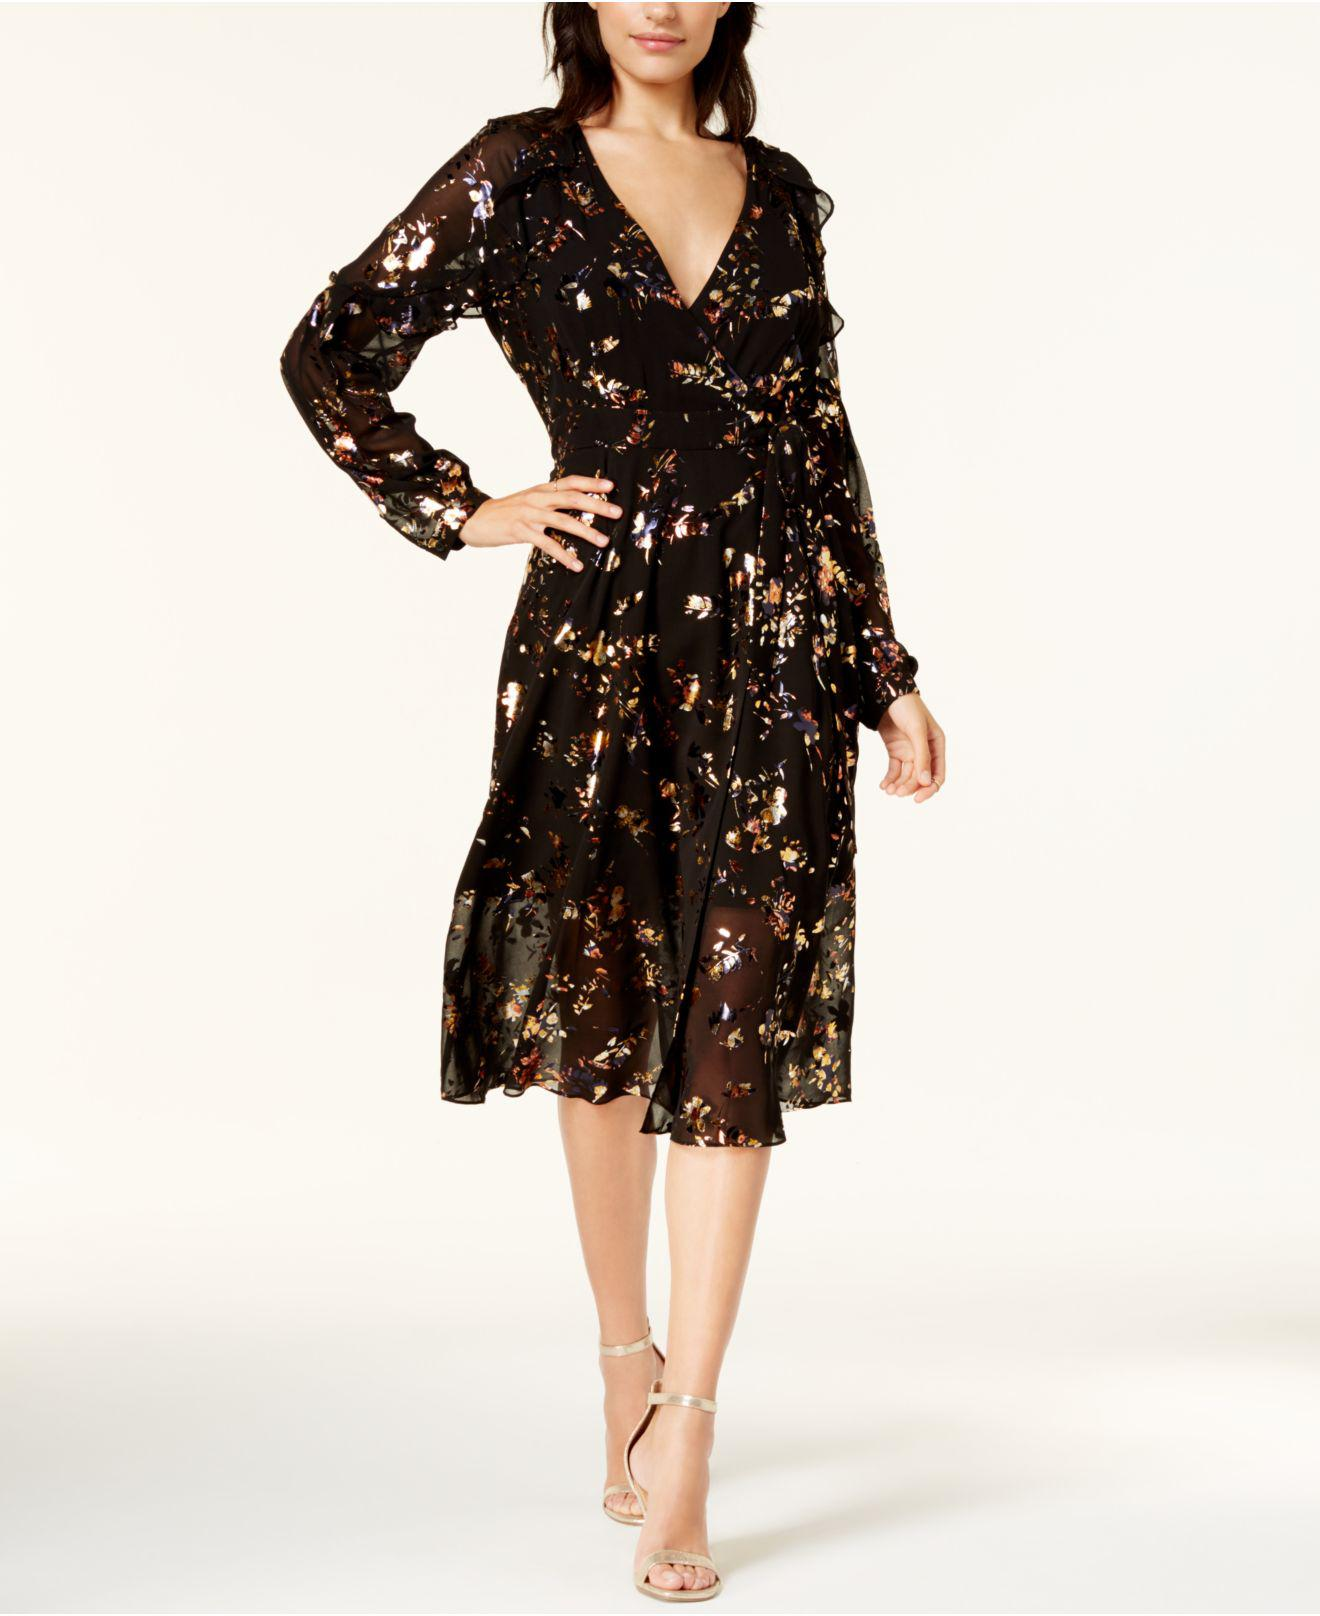 285dd736ace2 Lyst - RACHEL Rachel Roy Printed Mesh Wrap Dress in Black